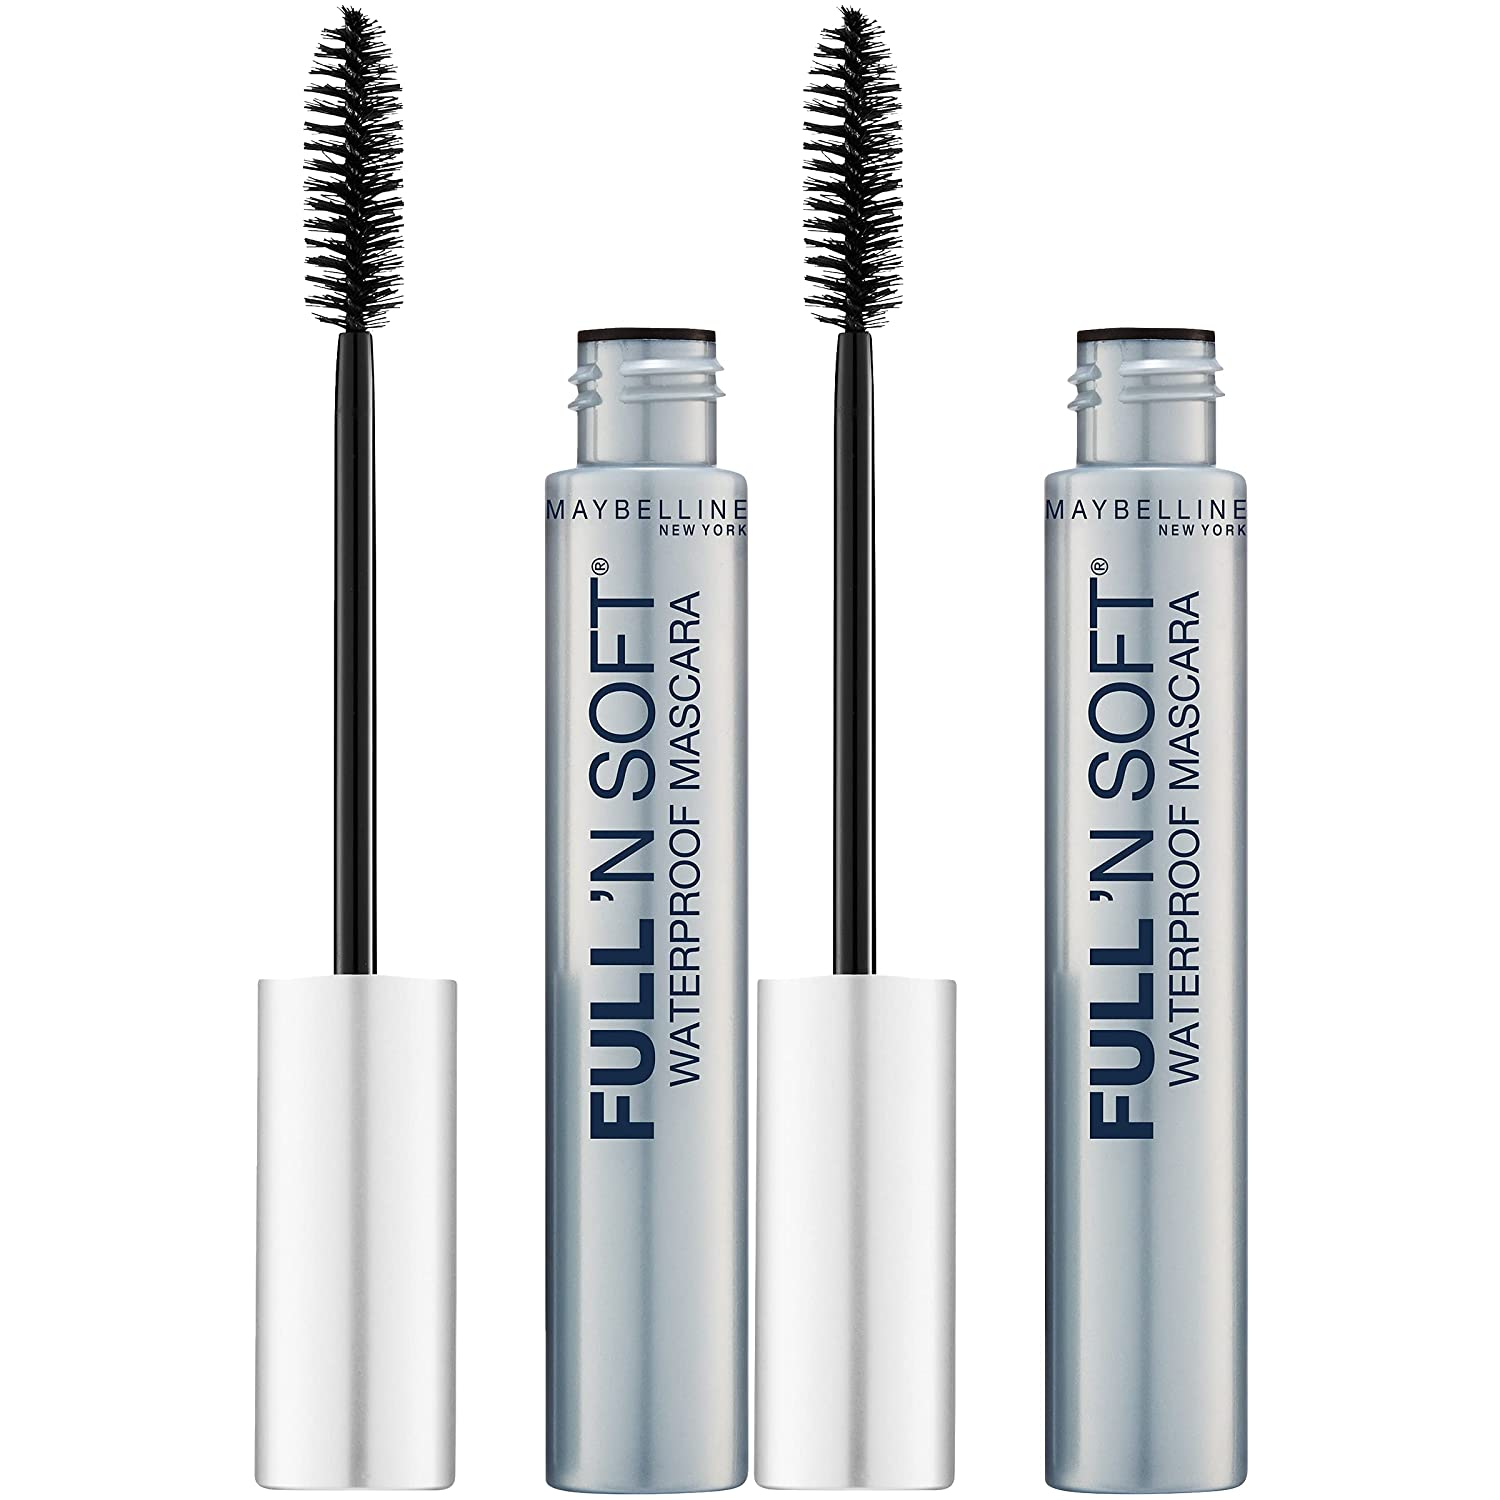 Maybelline New Max 71% OFF Max 58% OFF York Full 'n Soft Very Waterproof Makeup Mascara